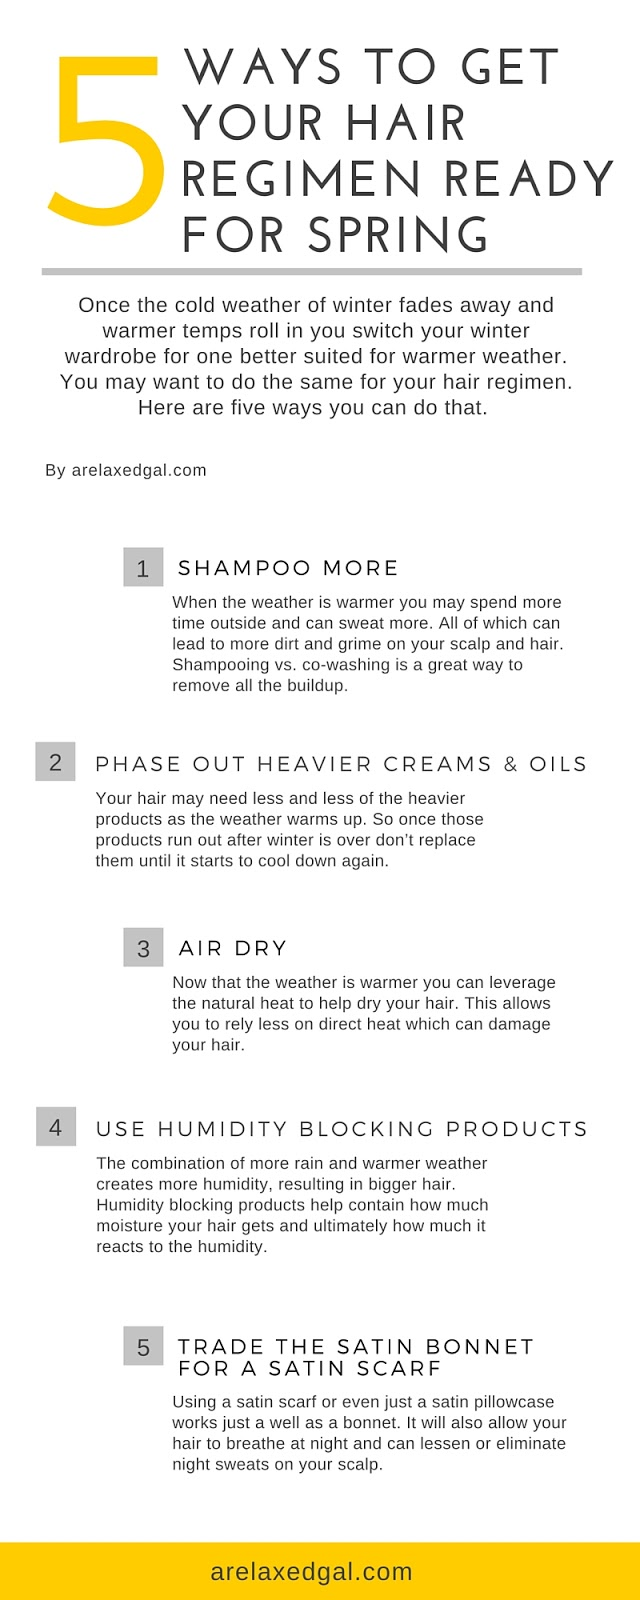 With the coming of spring comes longer days, more sun, warmer weather and possibly more rain showers. With each changing season I like to evaluate the hair care products I use and see if anything needs to be put phased out or if I need to a new product. | arelaxedgal.com